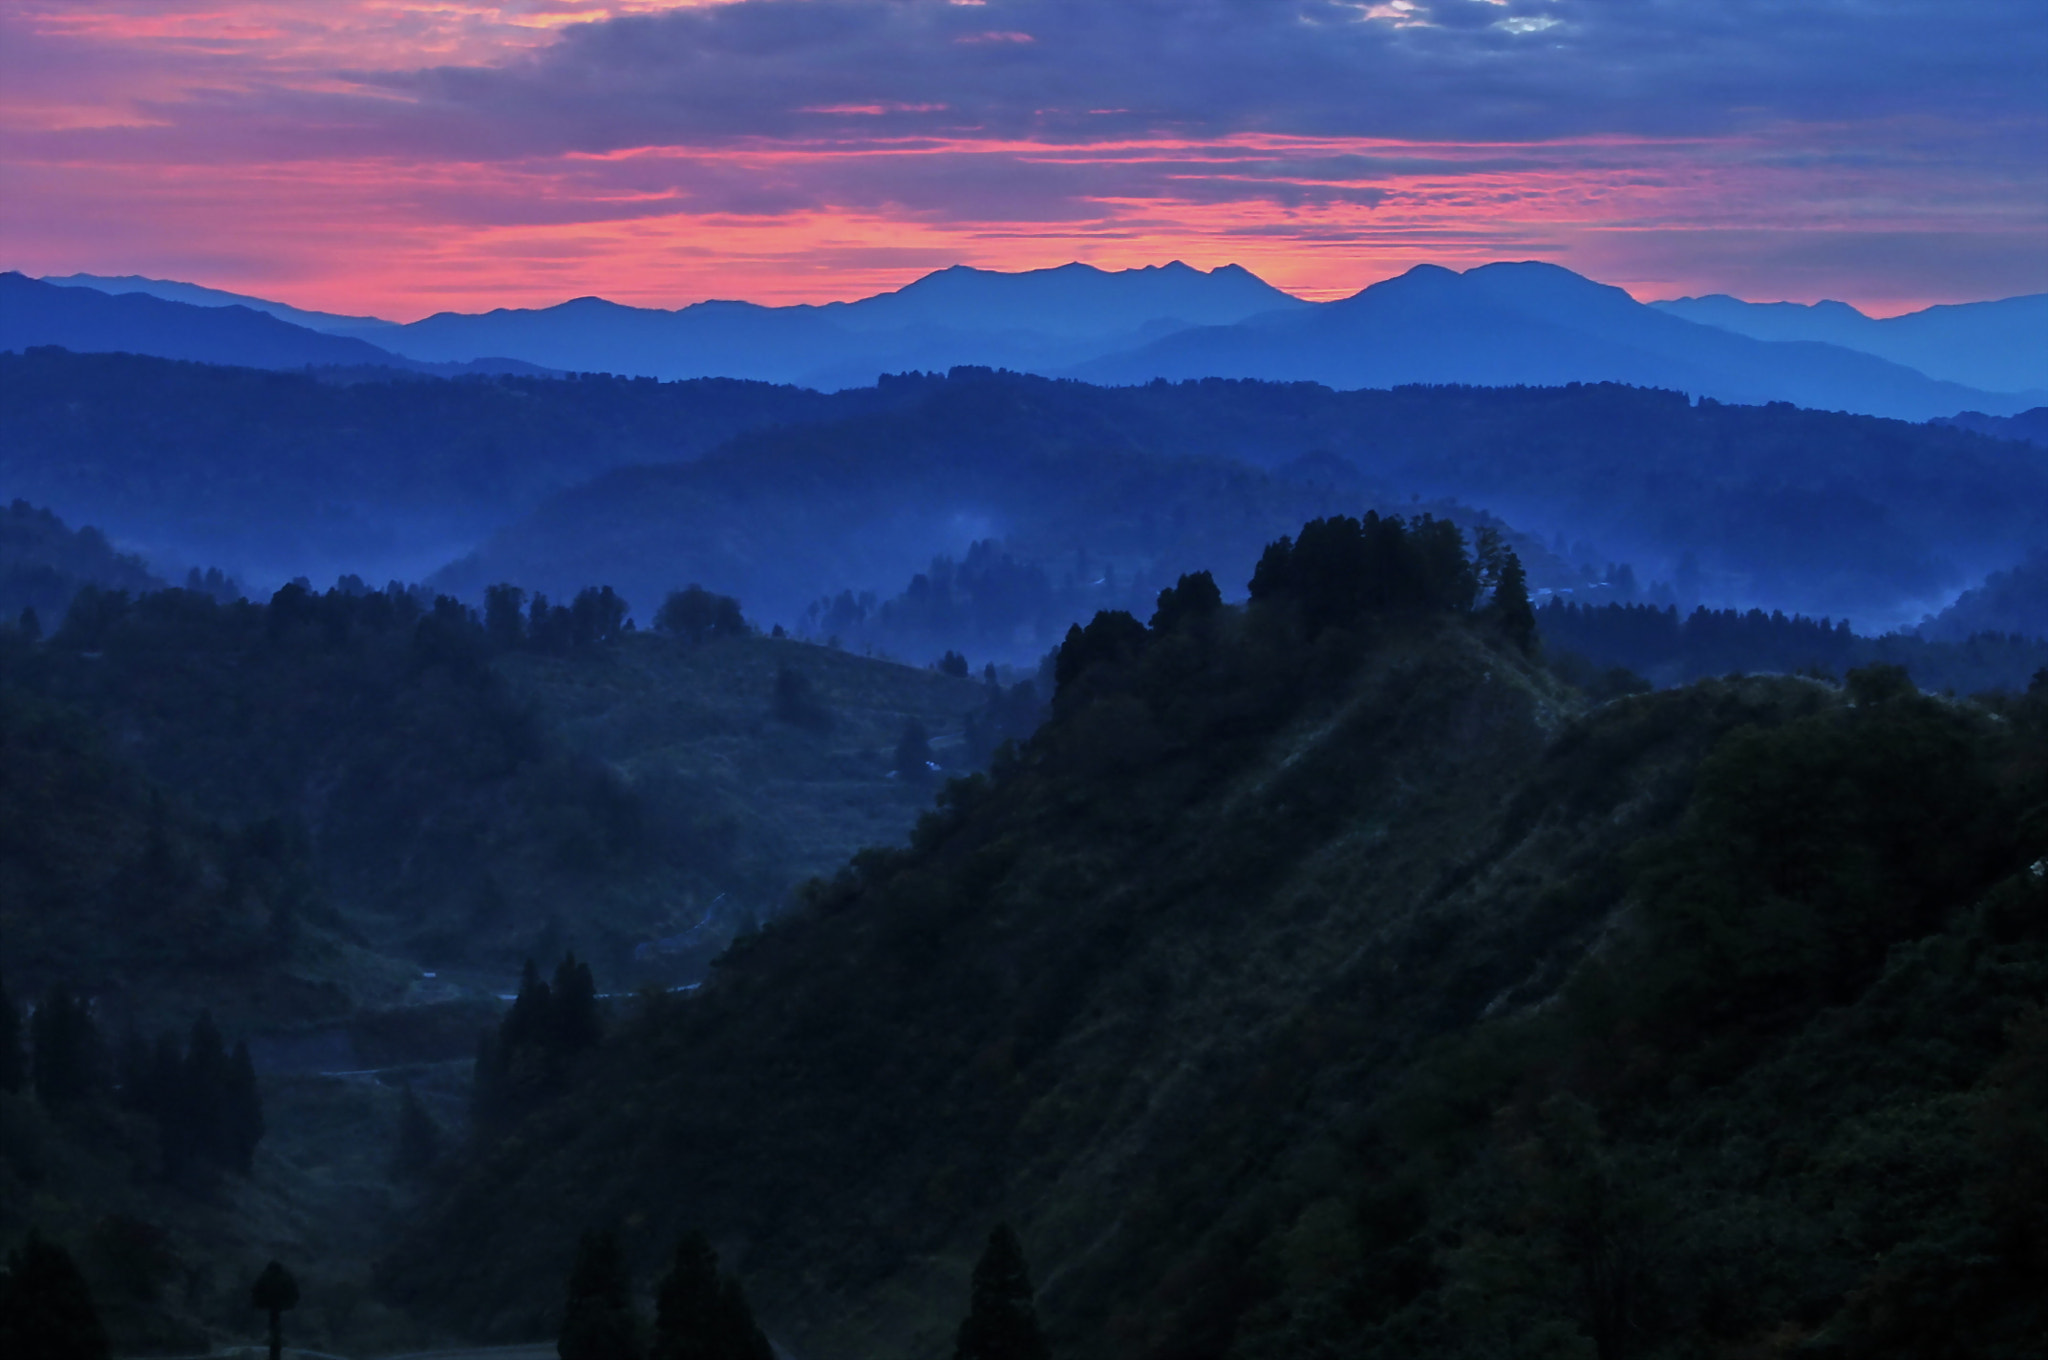 Photograph The mountains in the dawn by KEN OHSAWA on 500px